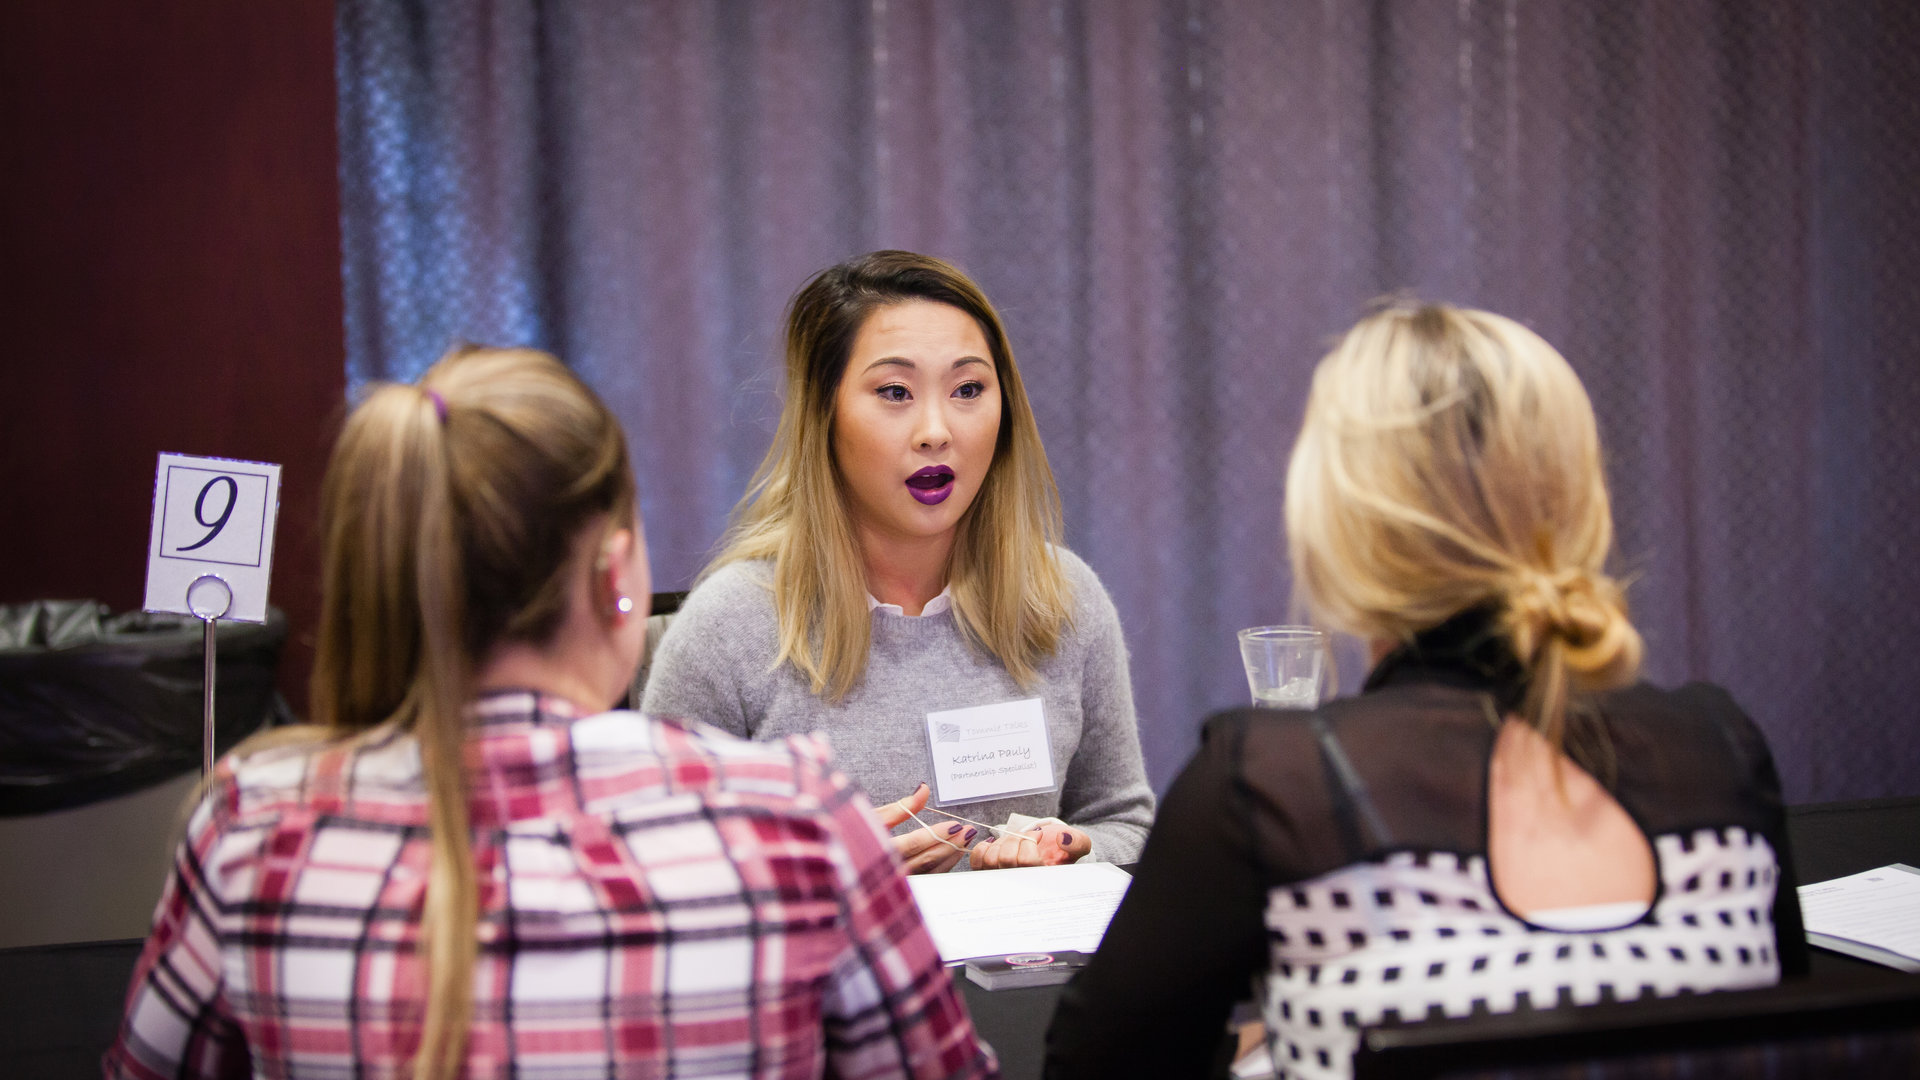 students talk to a mentor during a Speed Mentoring event